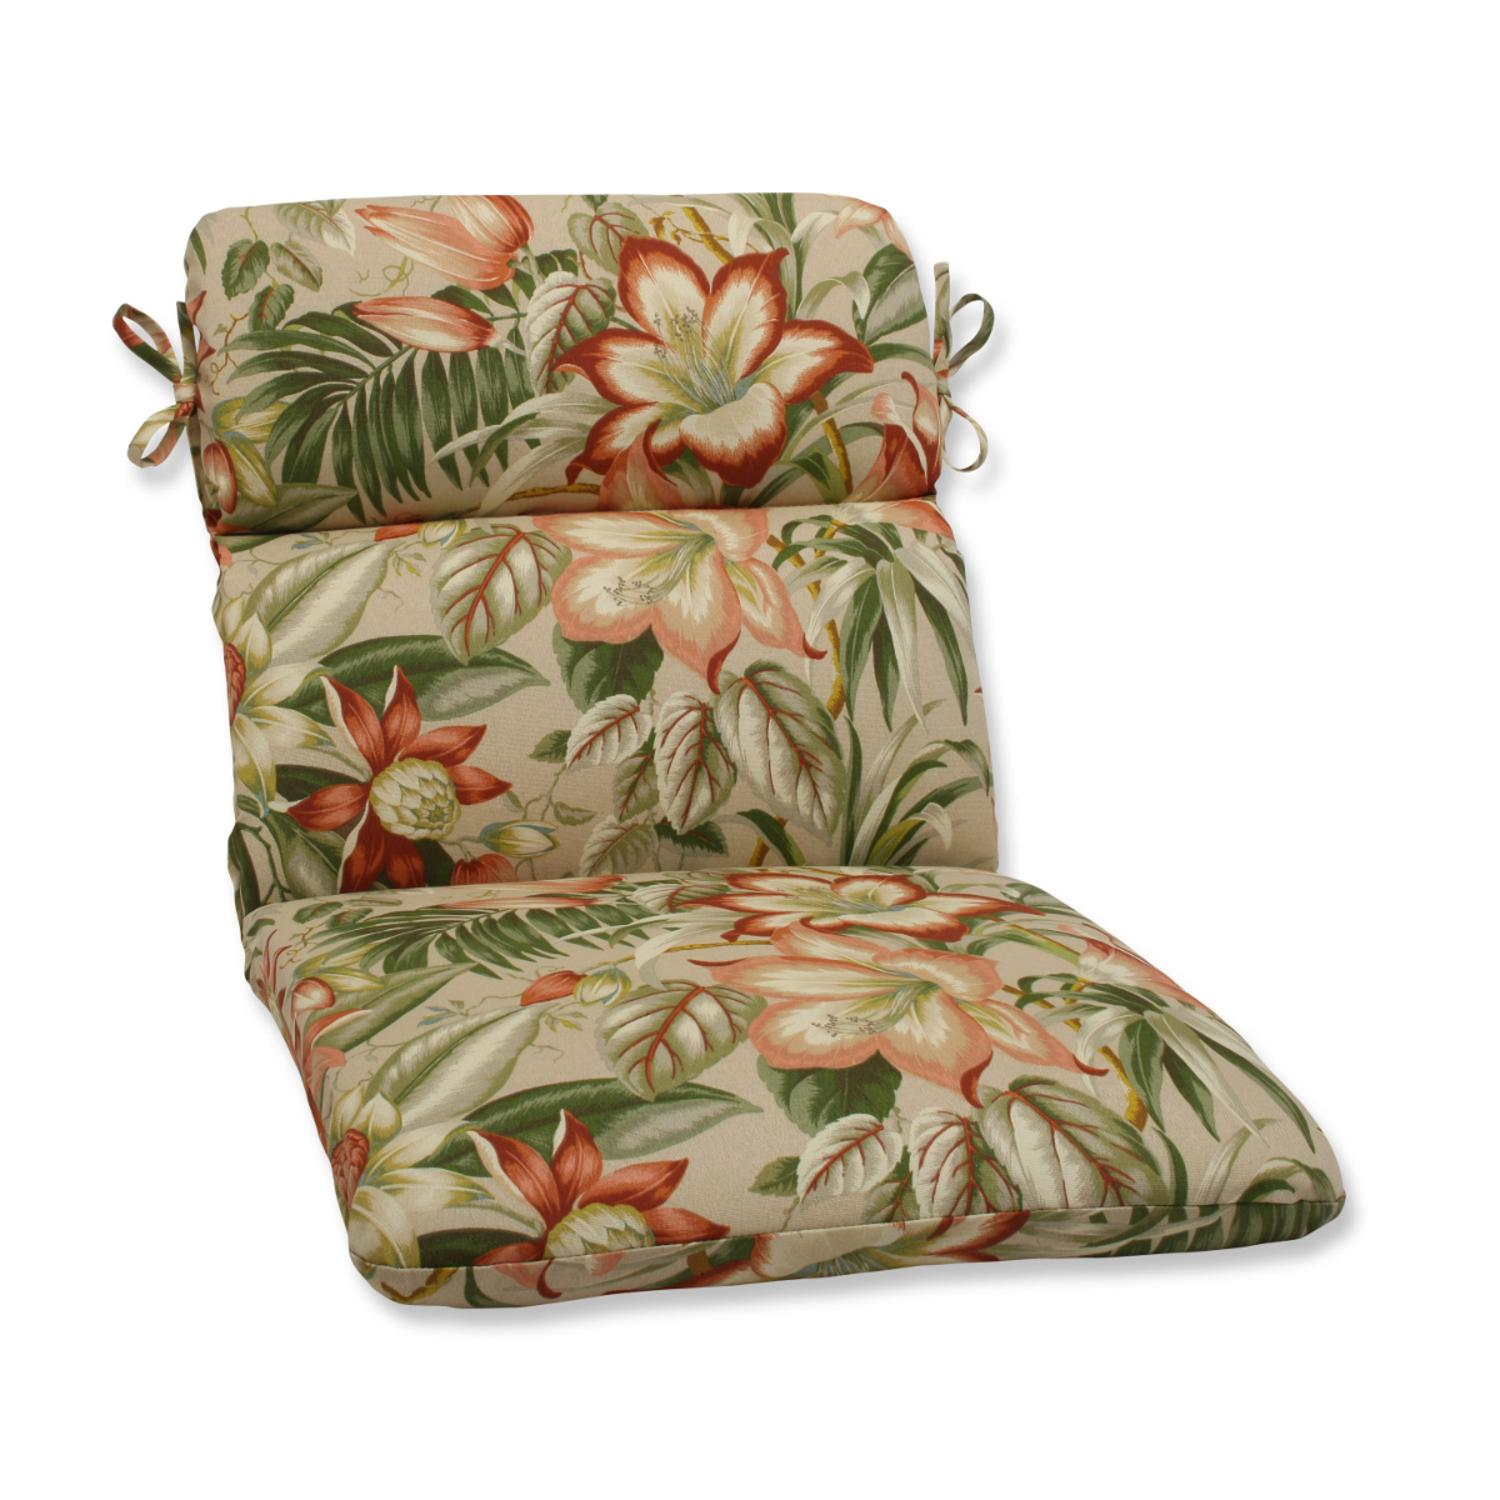 """40.5"""" Green, Tan and Coral Tropical Garden Decorative Outdoor Patio Rounded Chair Cushion by CC Outdoor Living"""